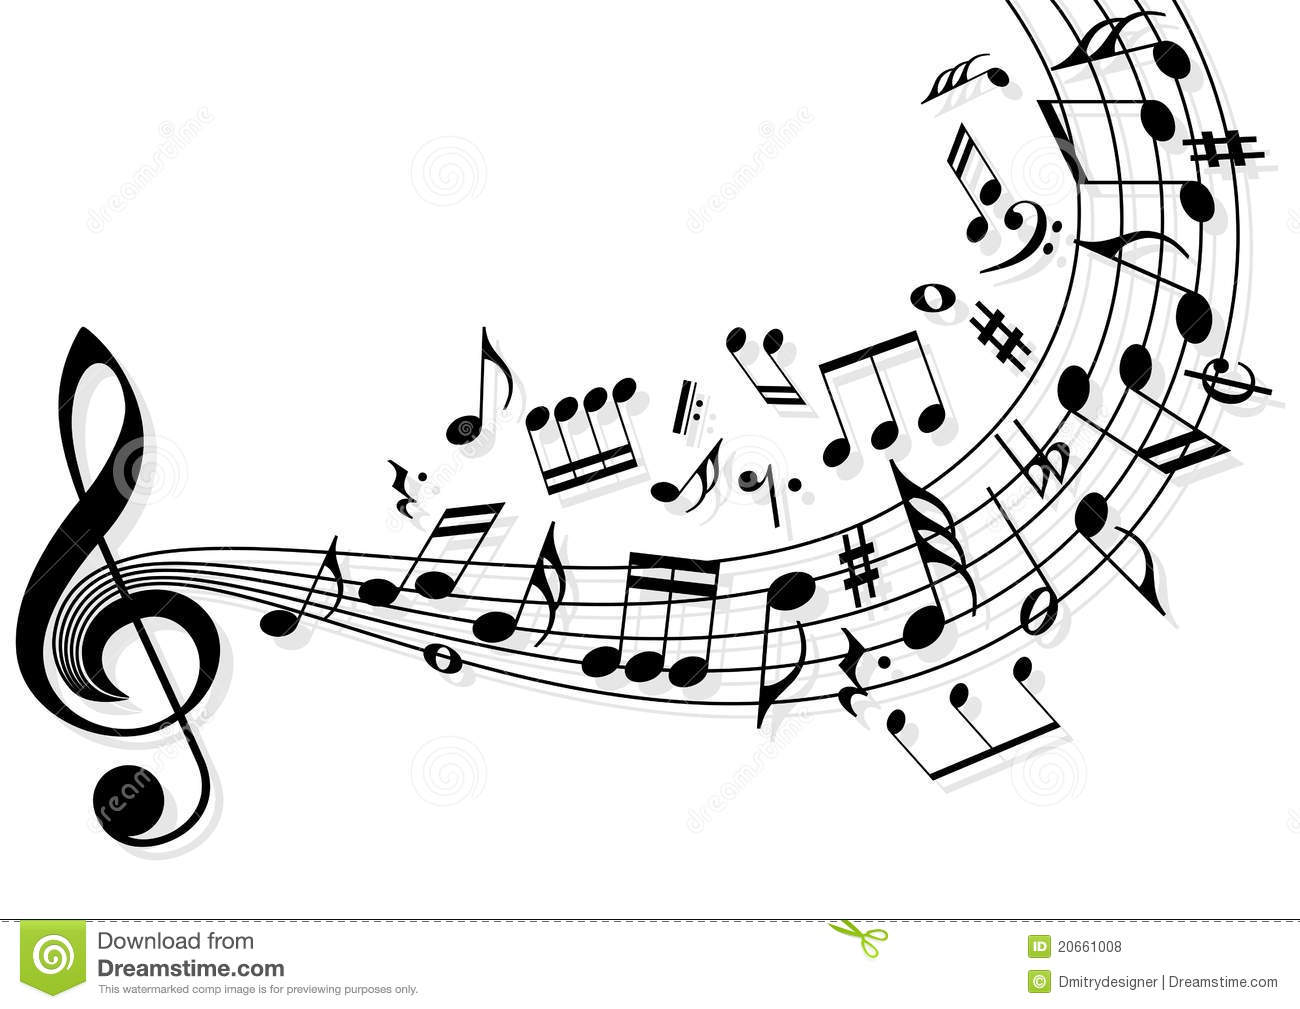 Music notes stock vector. Illustration of banner, music